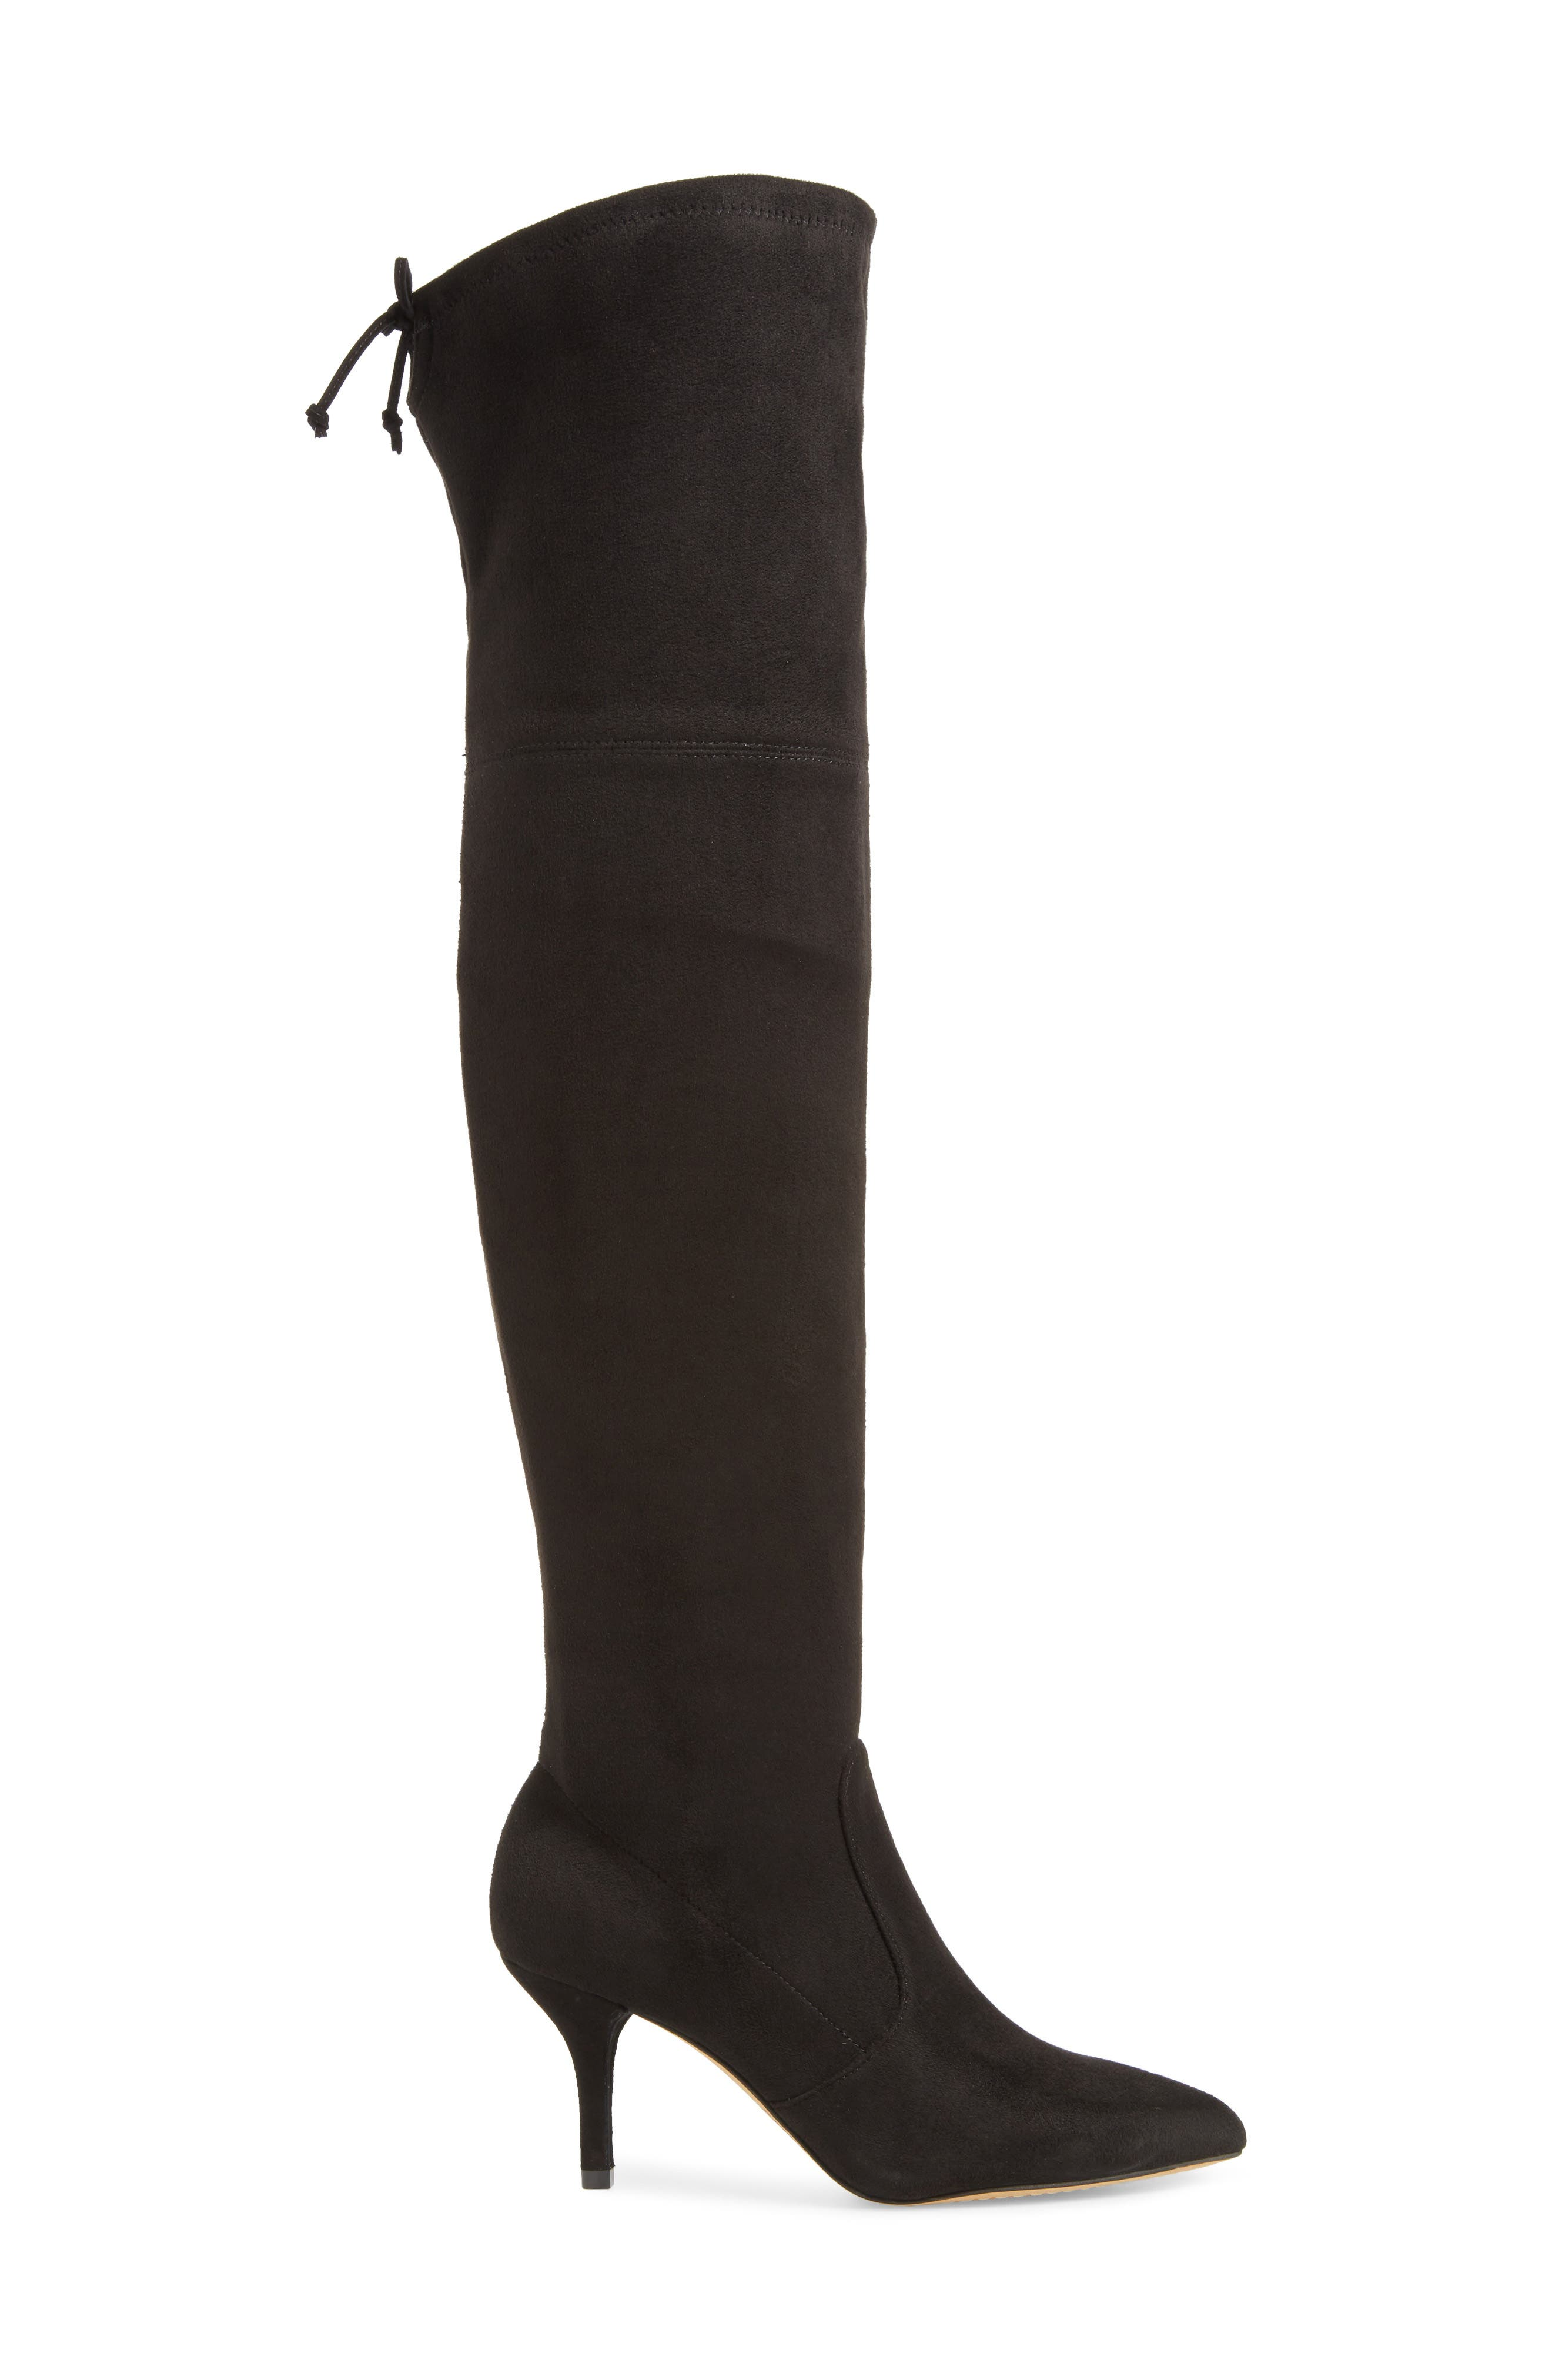 VINCE CAMUTO,                             Ashlina Over the Knee Boot,                             Alternate thumbnail 3, color,                             001